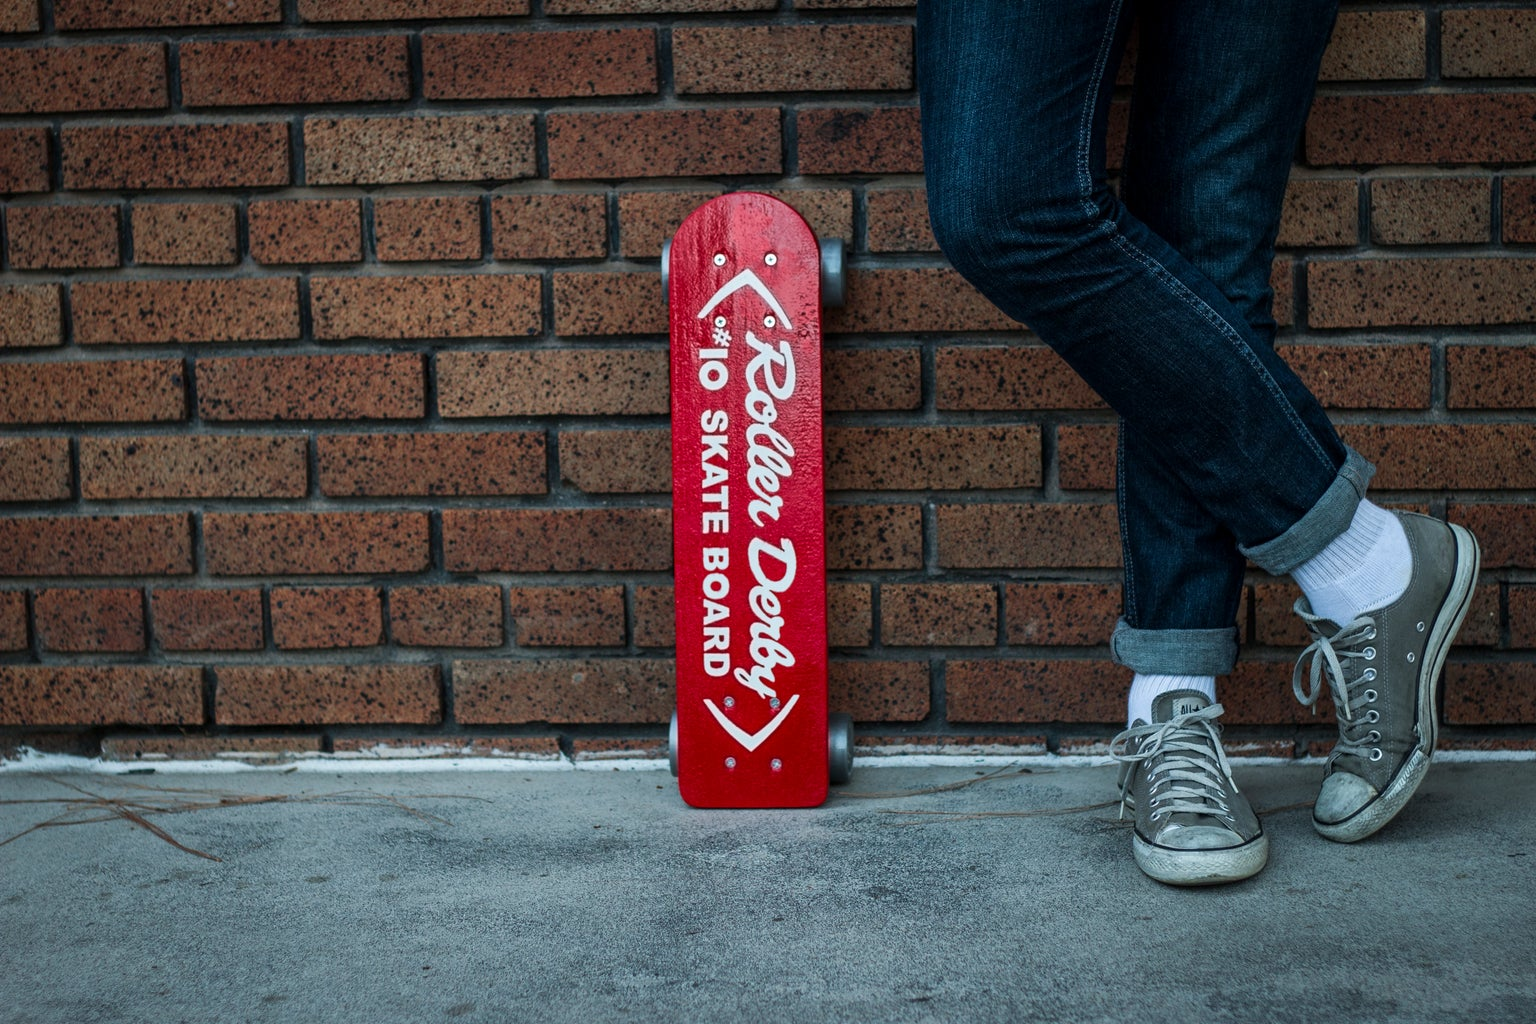 Gawking at Your Awesome Vintage Skateboard